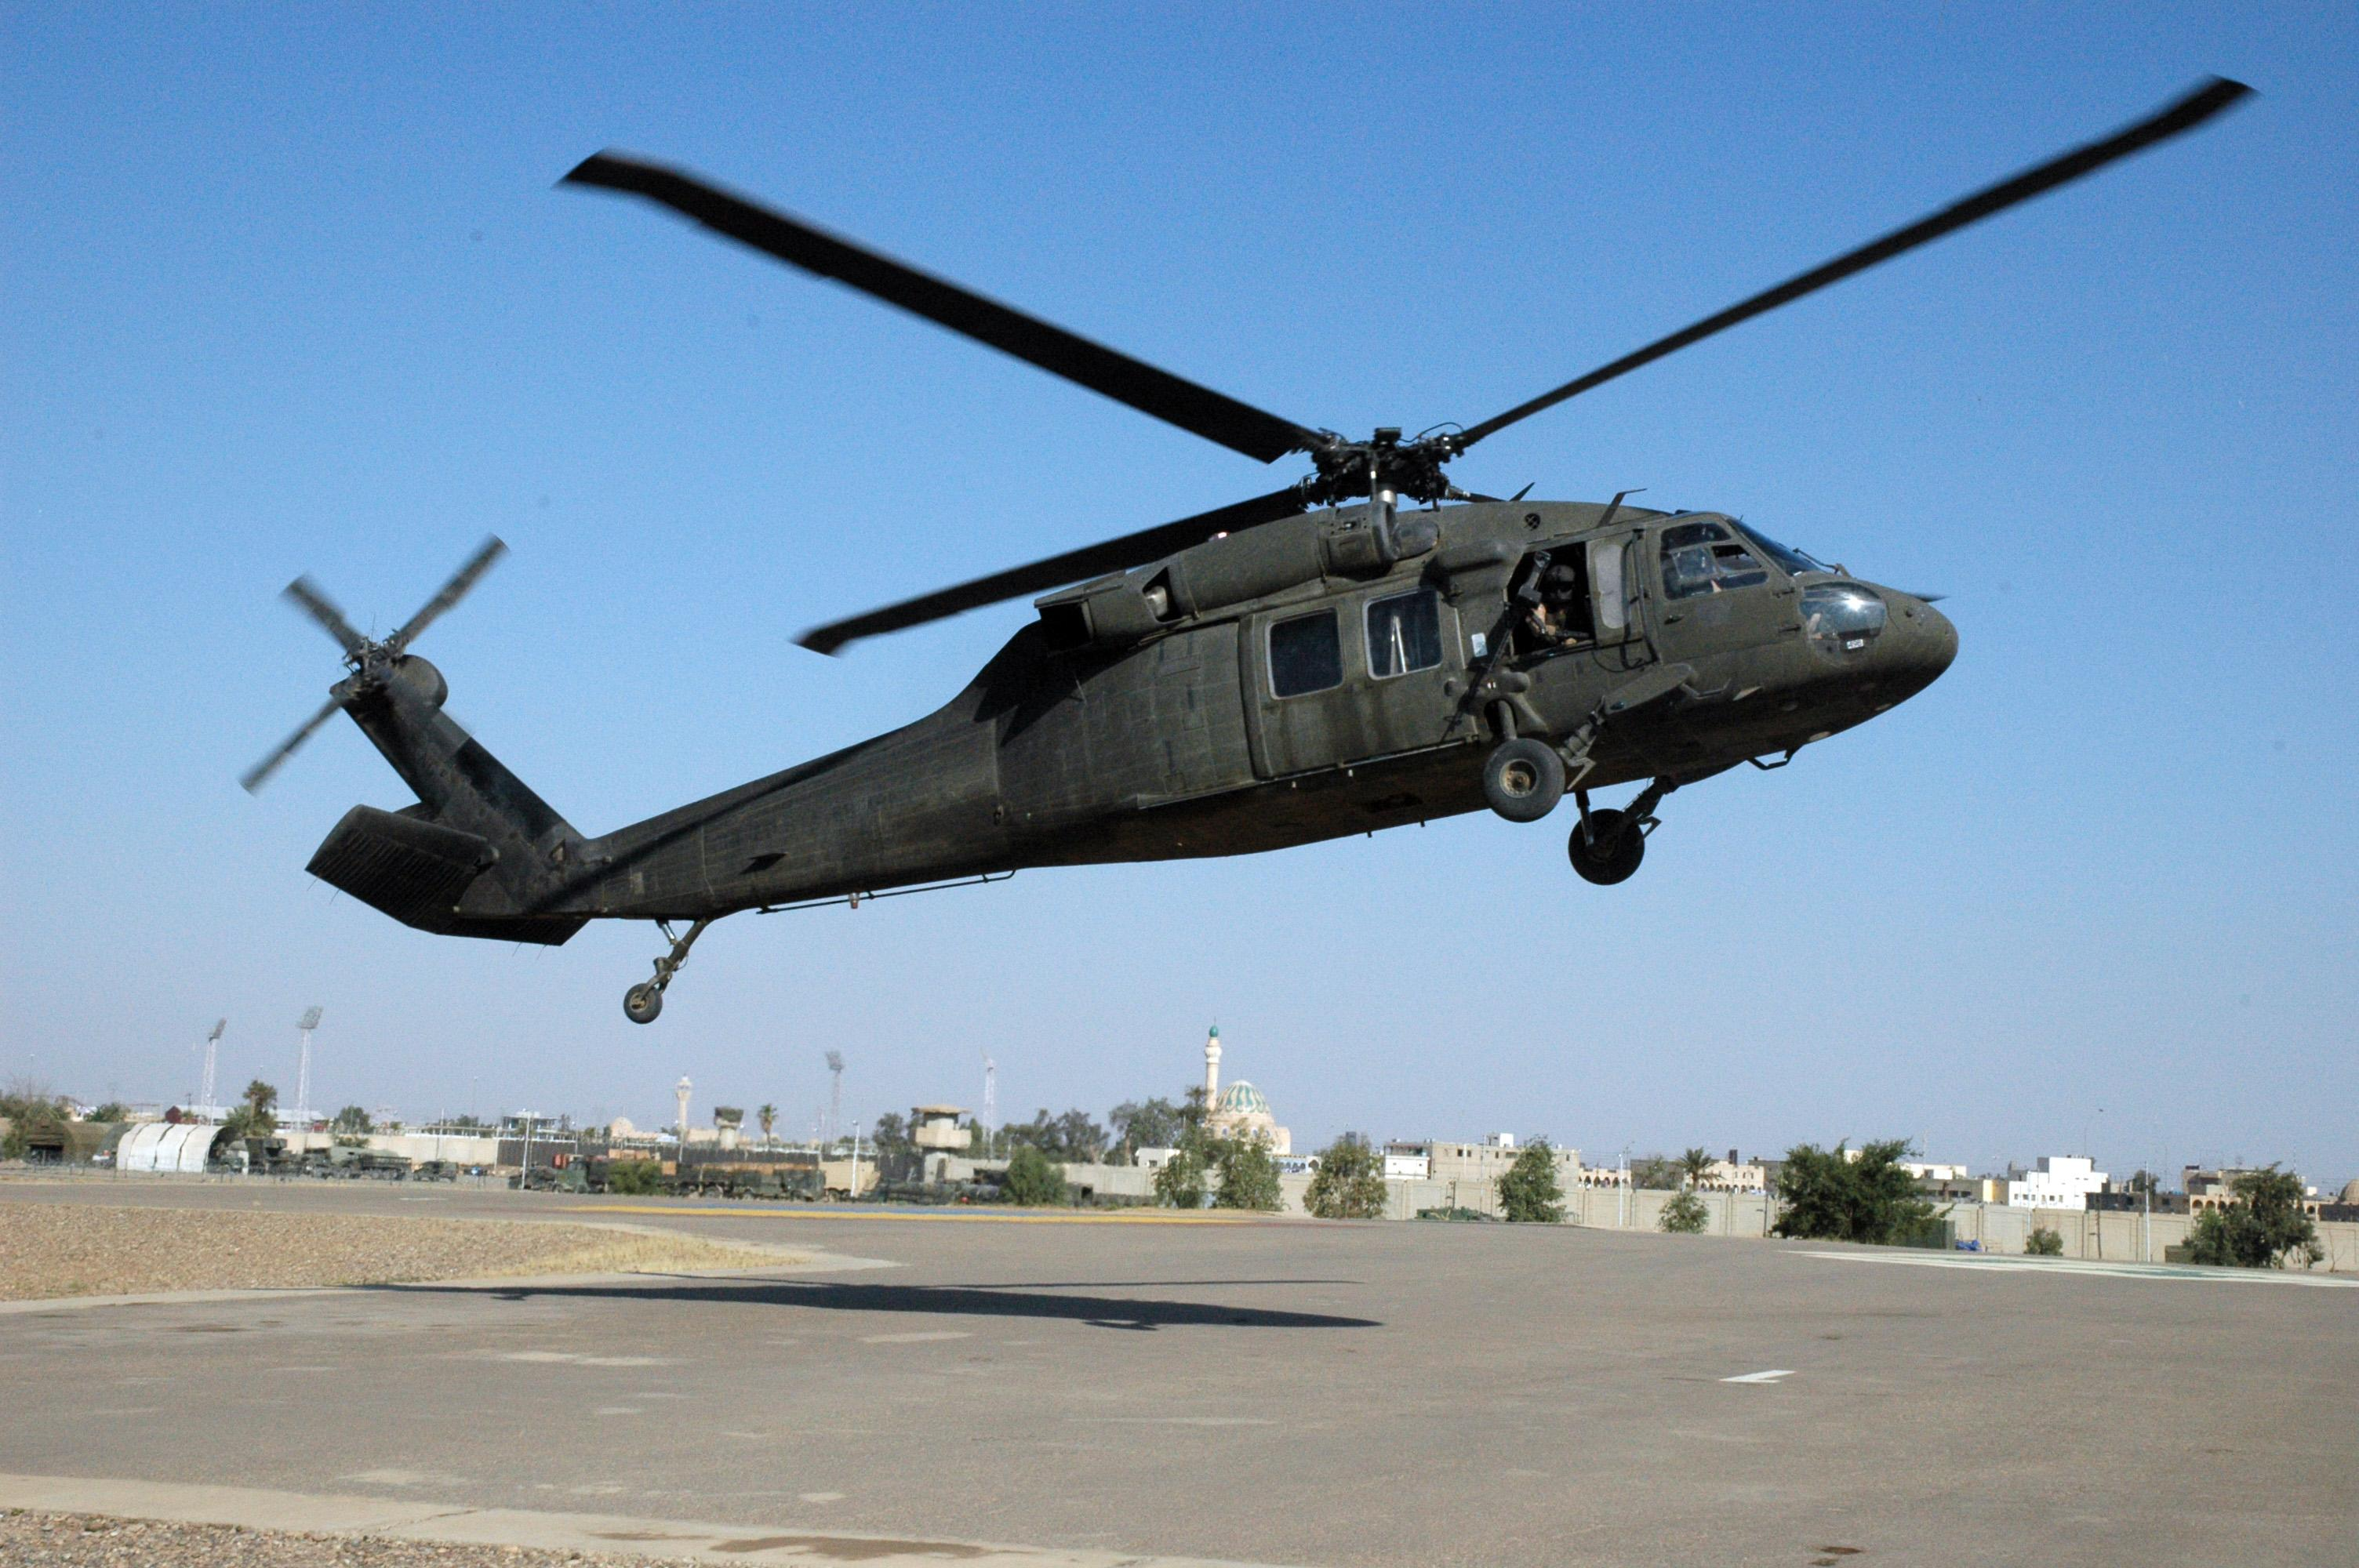 black-helicopter-pictures